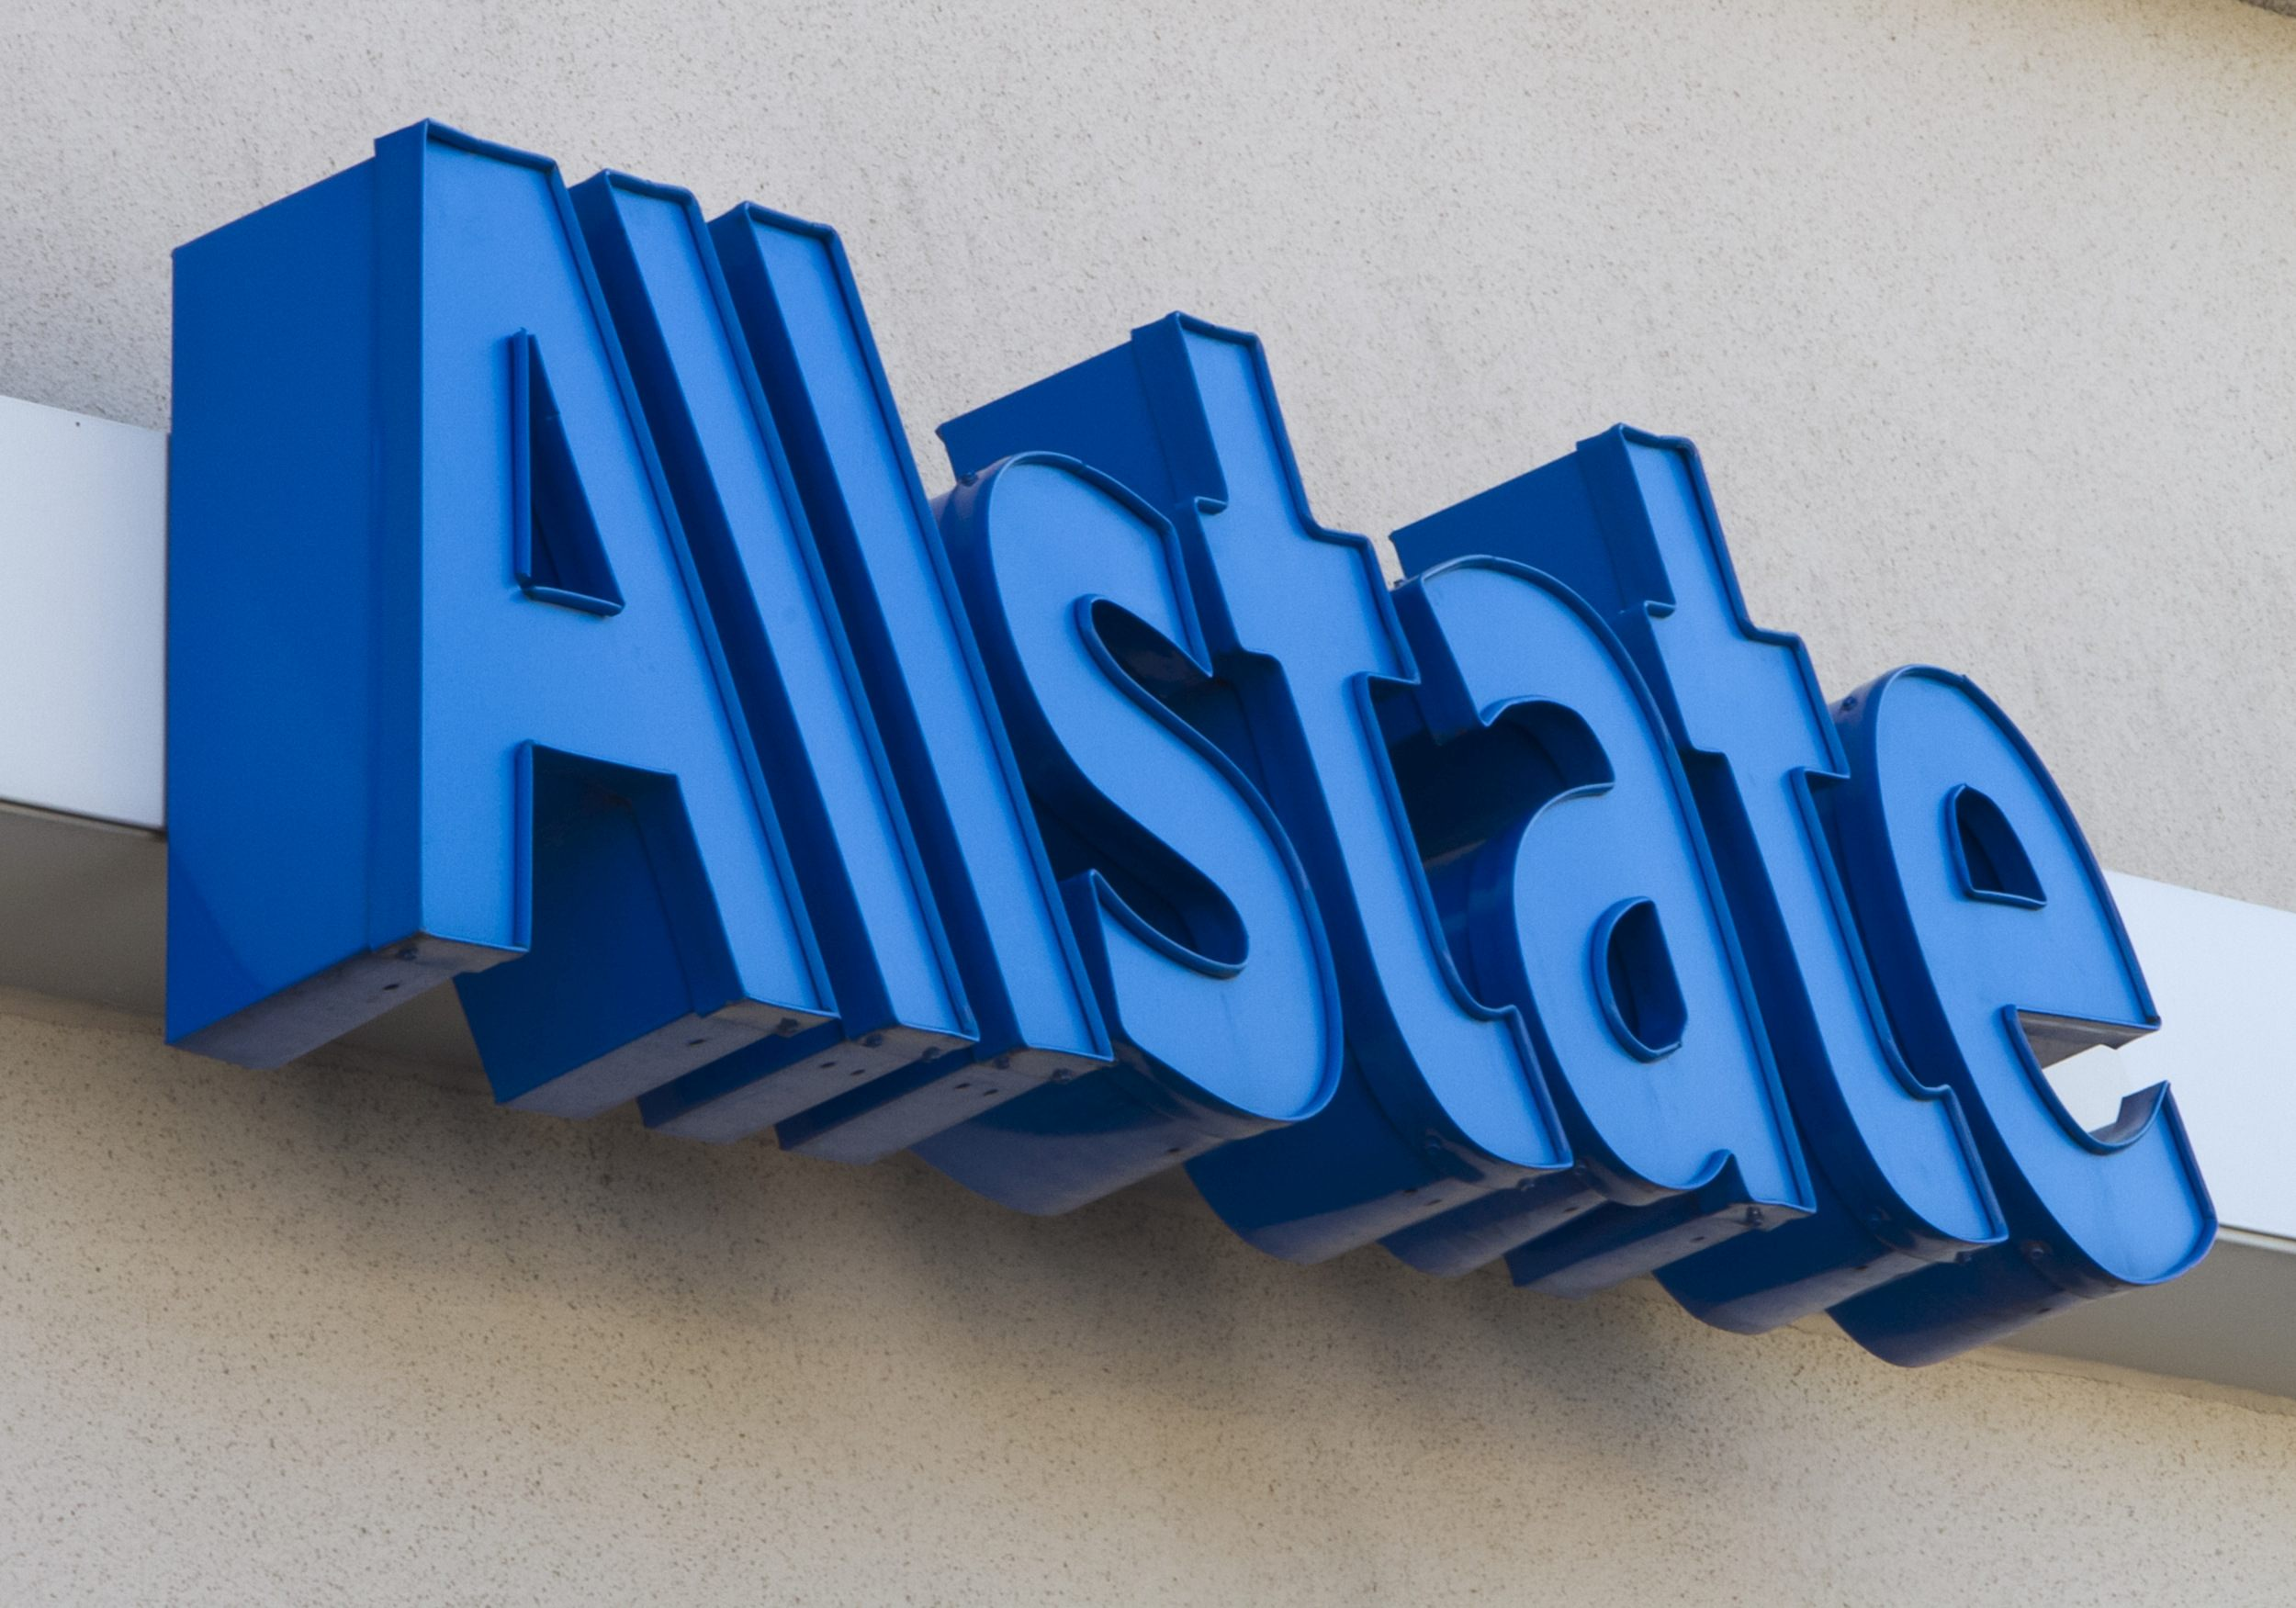 Allstate s quarterly profit slides as auto losses rise